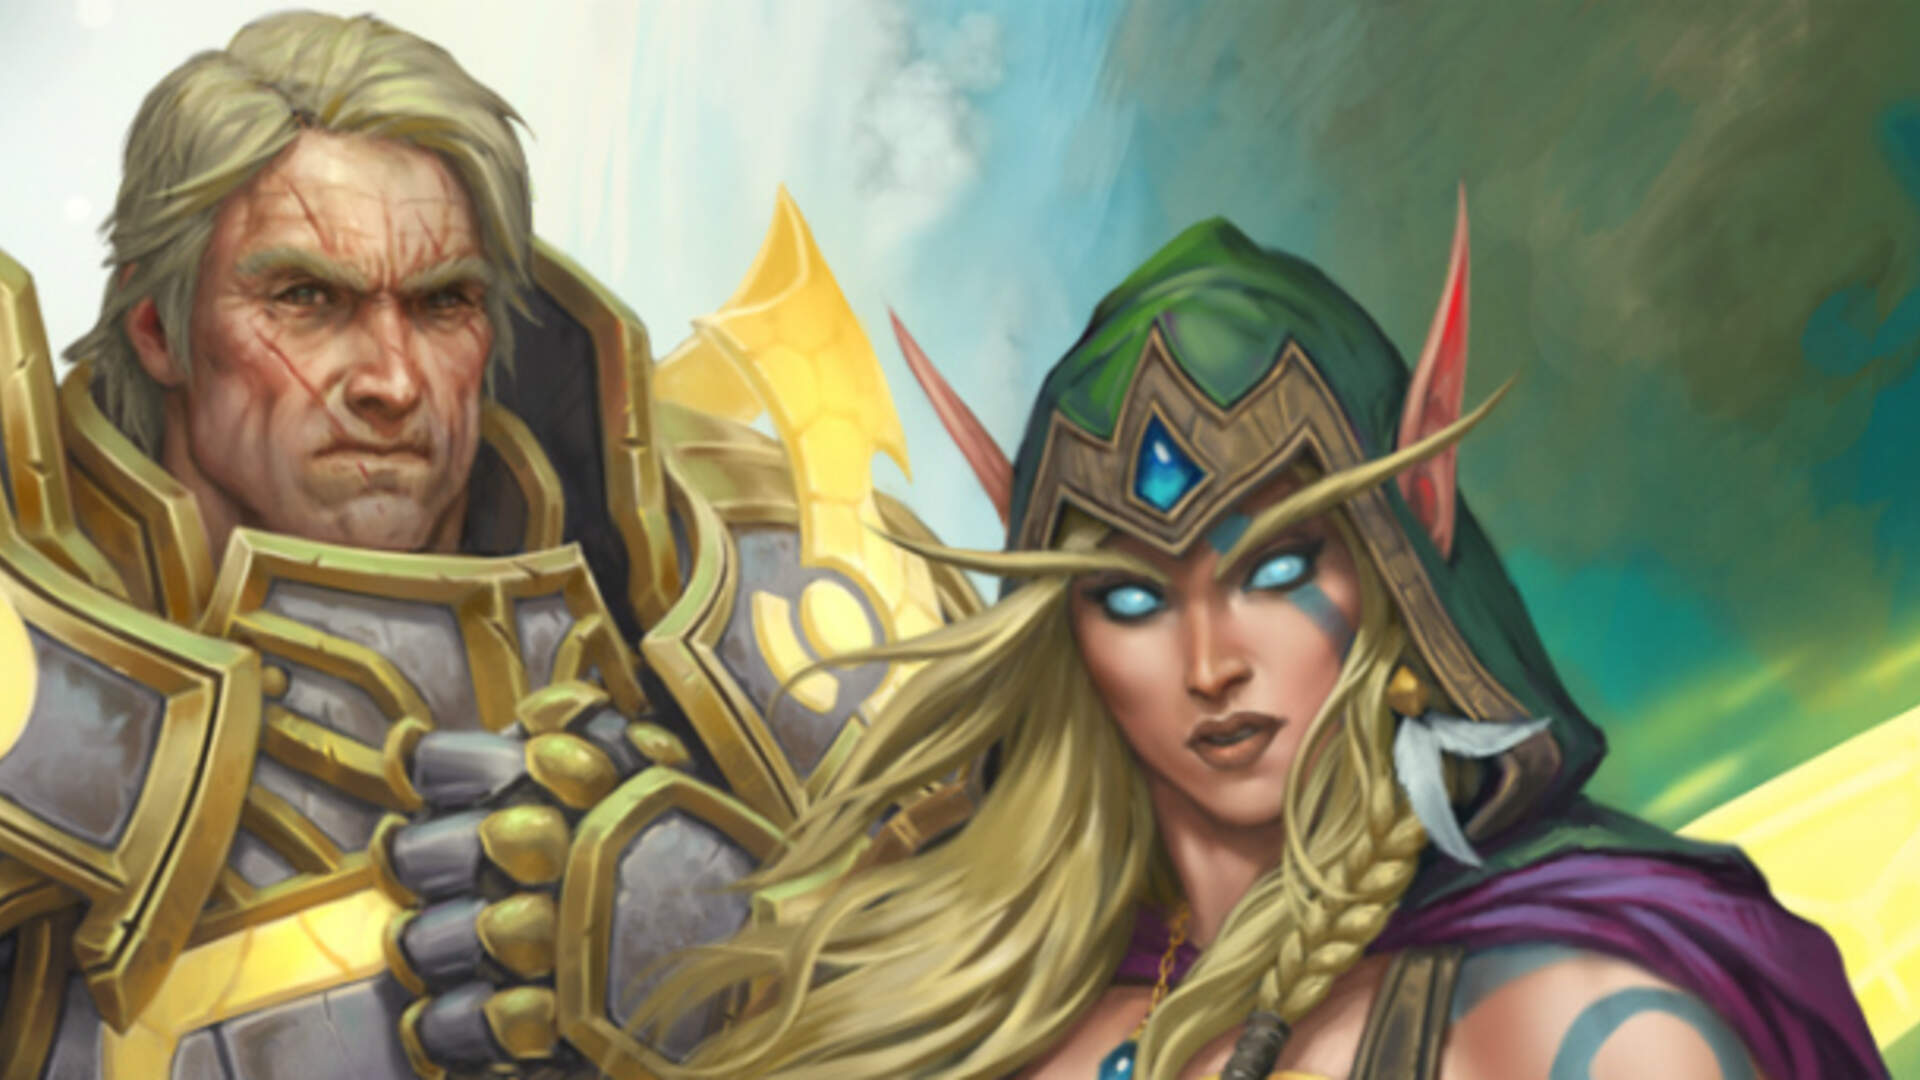 Players React To World of Warcraft's Intergalactic Journey in Shadows of Argus Patch